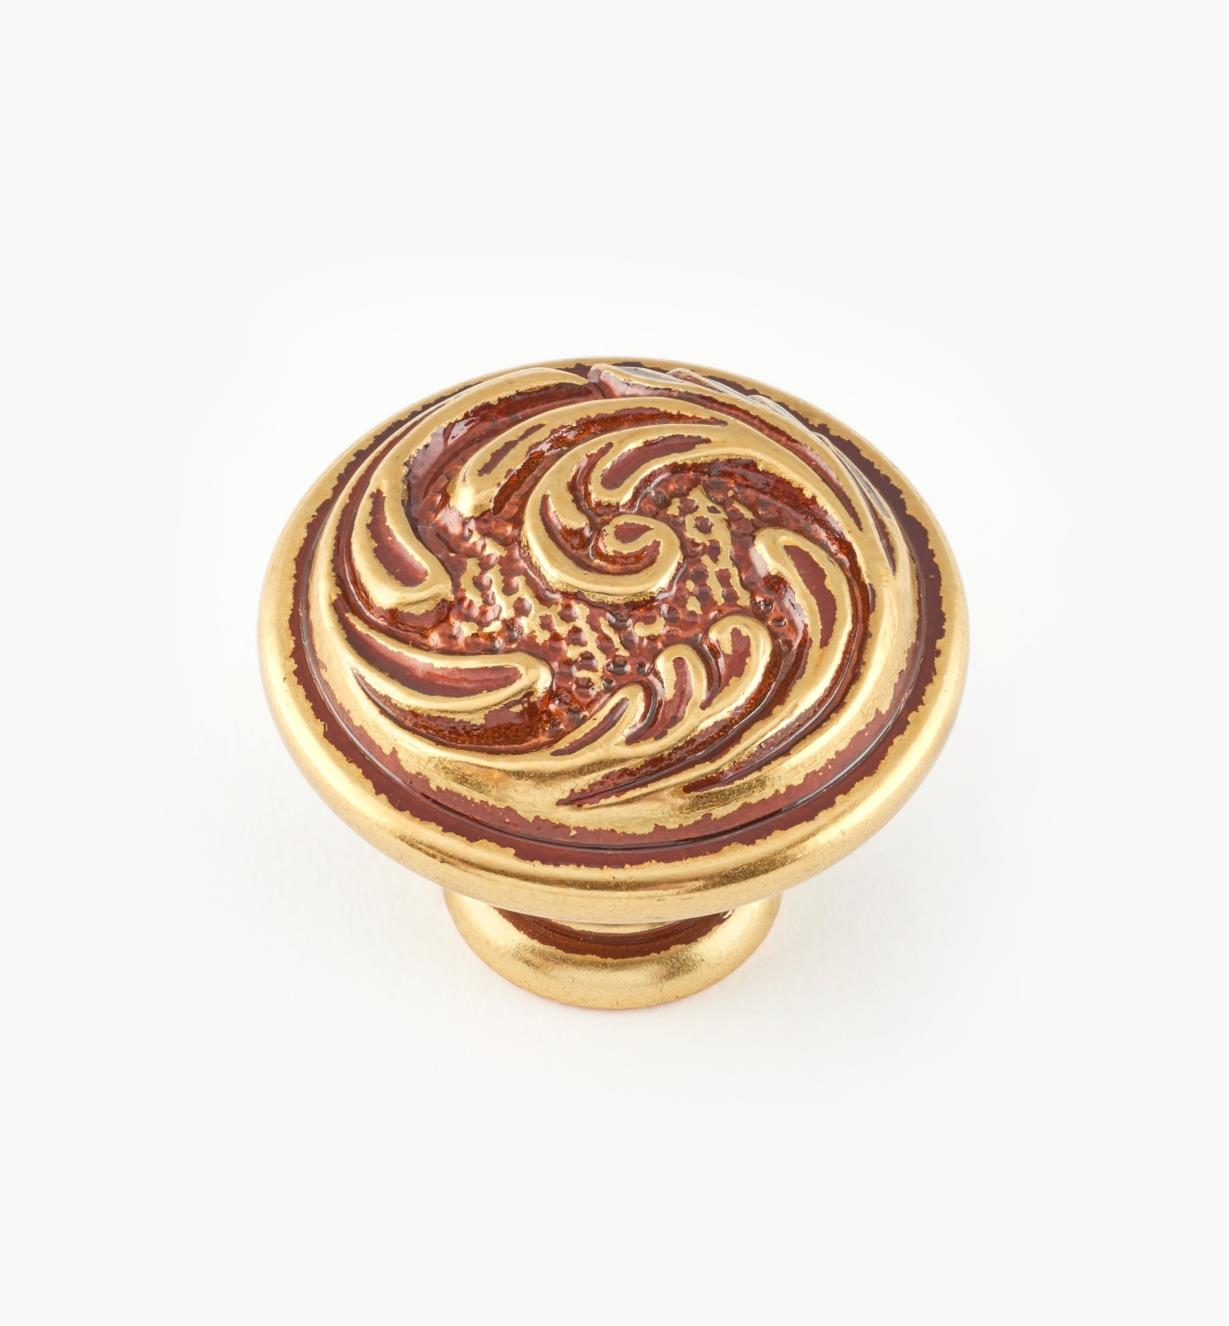 01A5352 - 35mm x 28mm Louis XV Knob